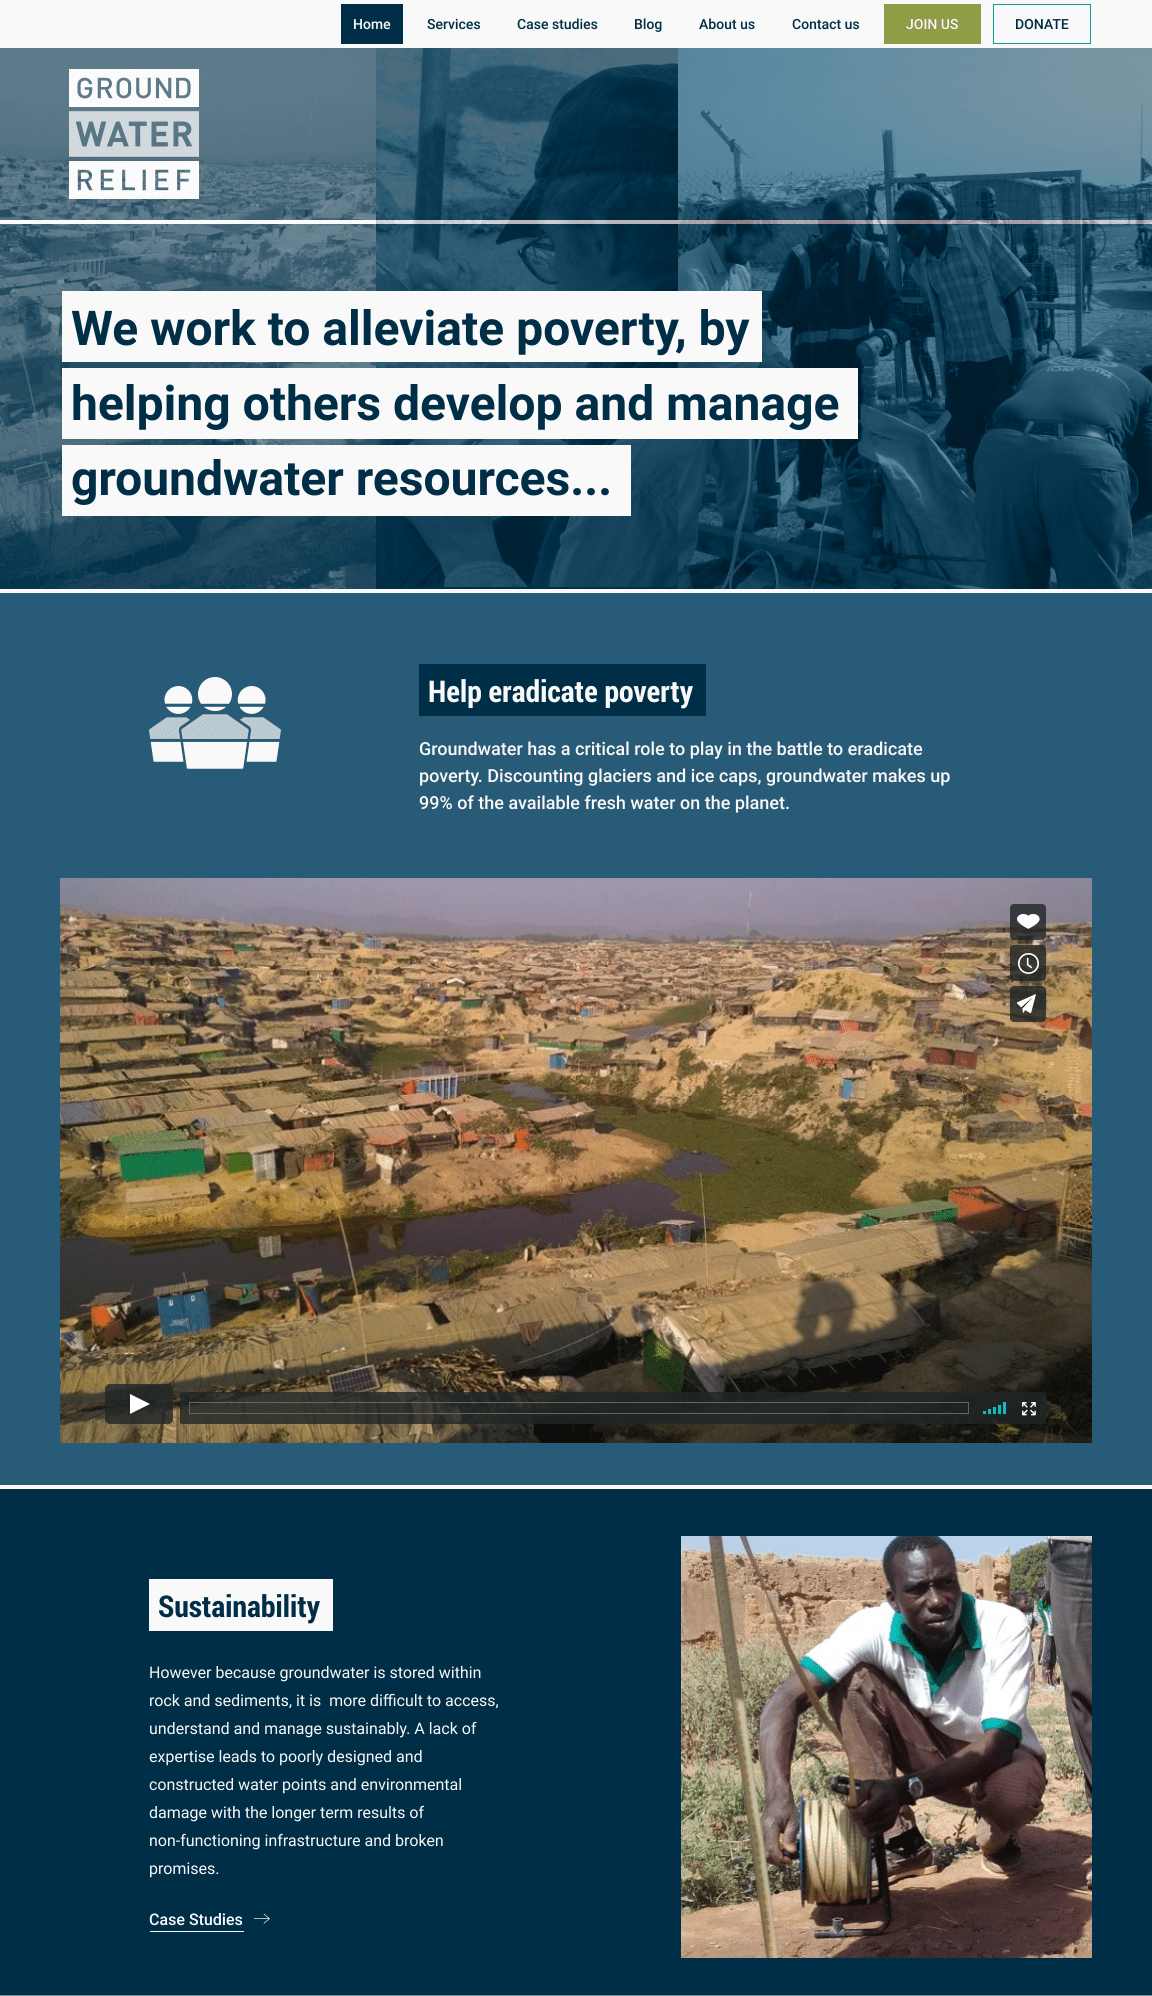 Screenshot from of Groundwater Relief homepage